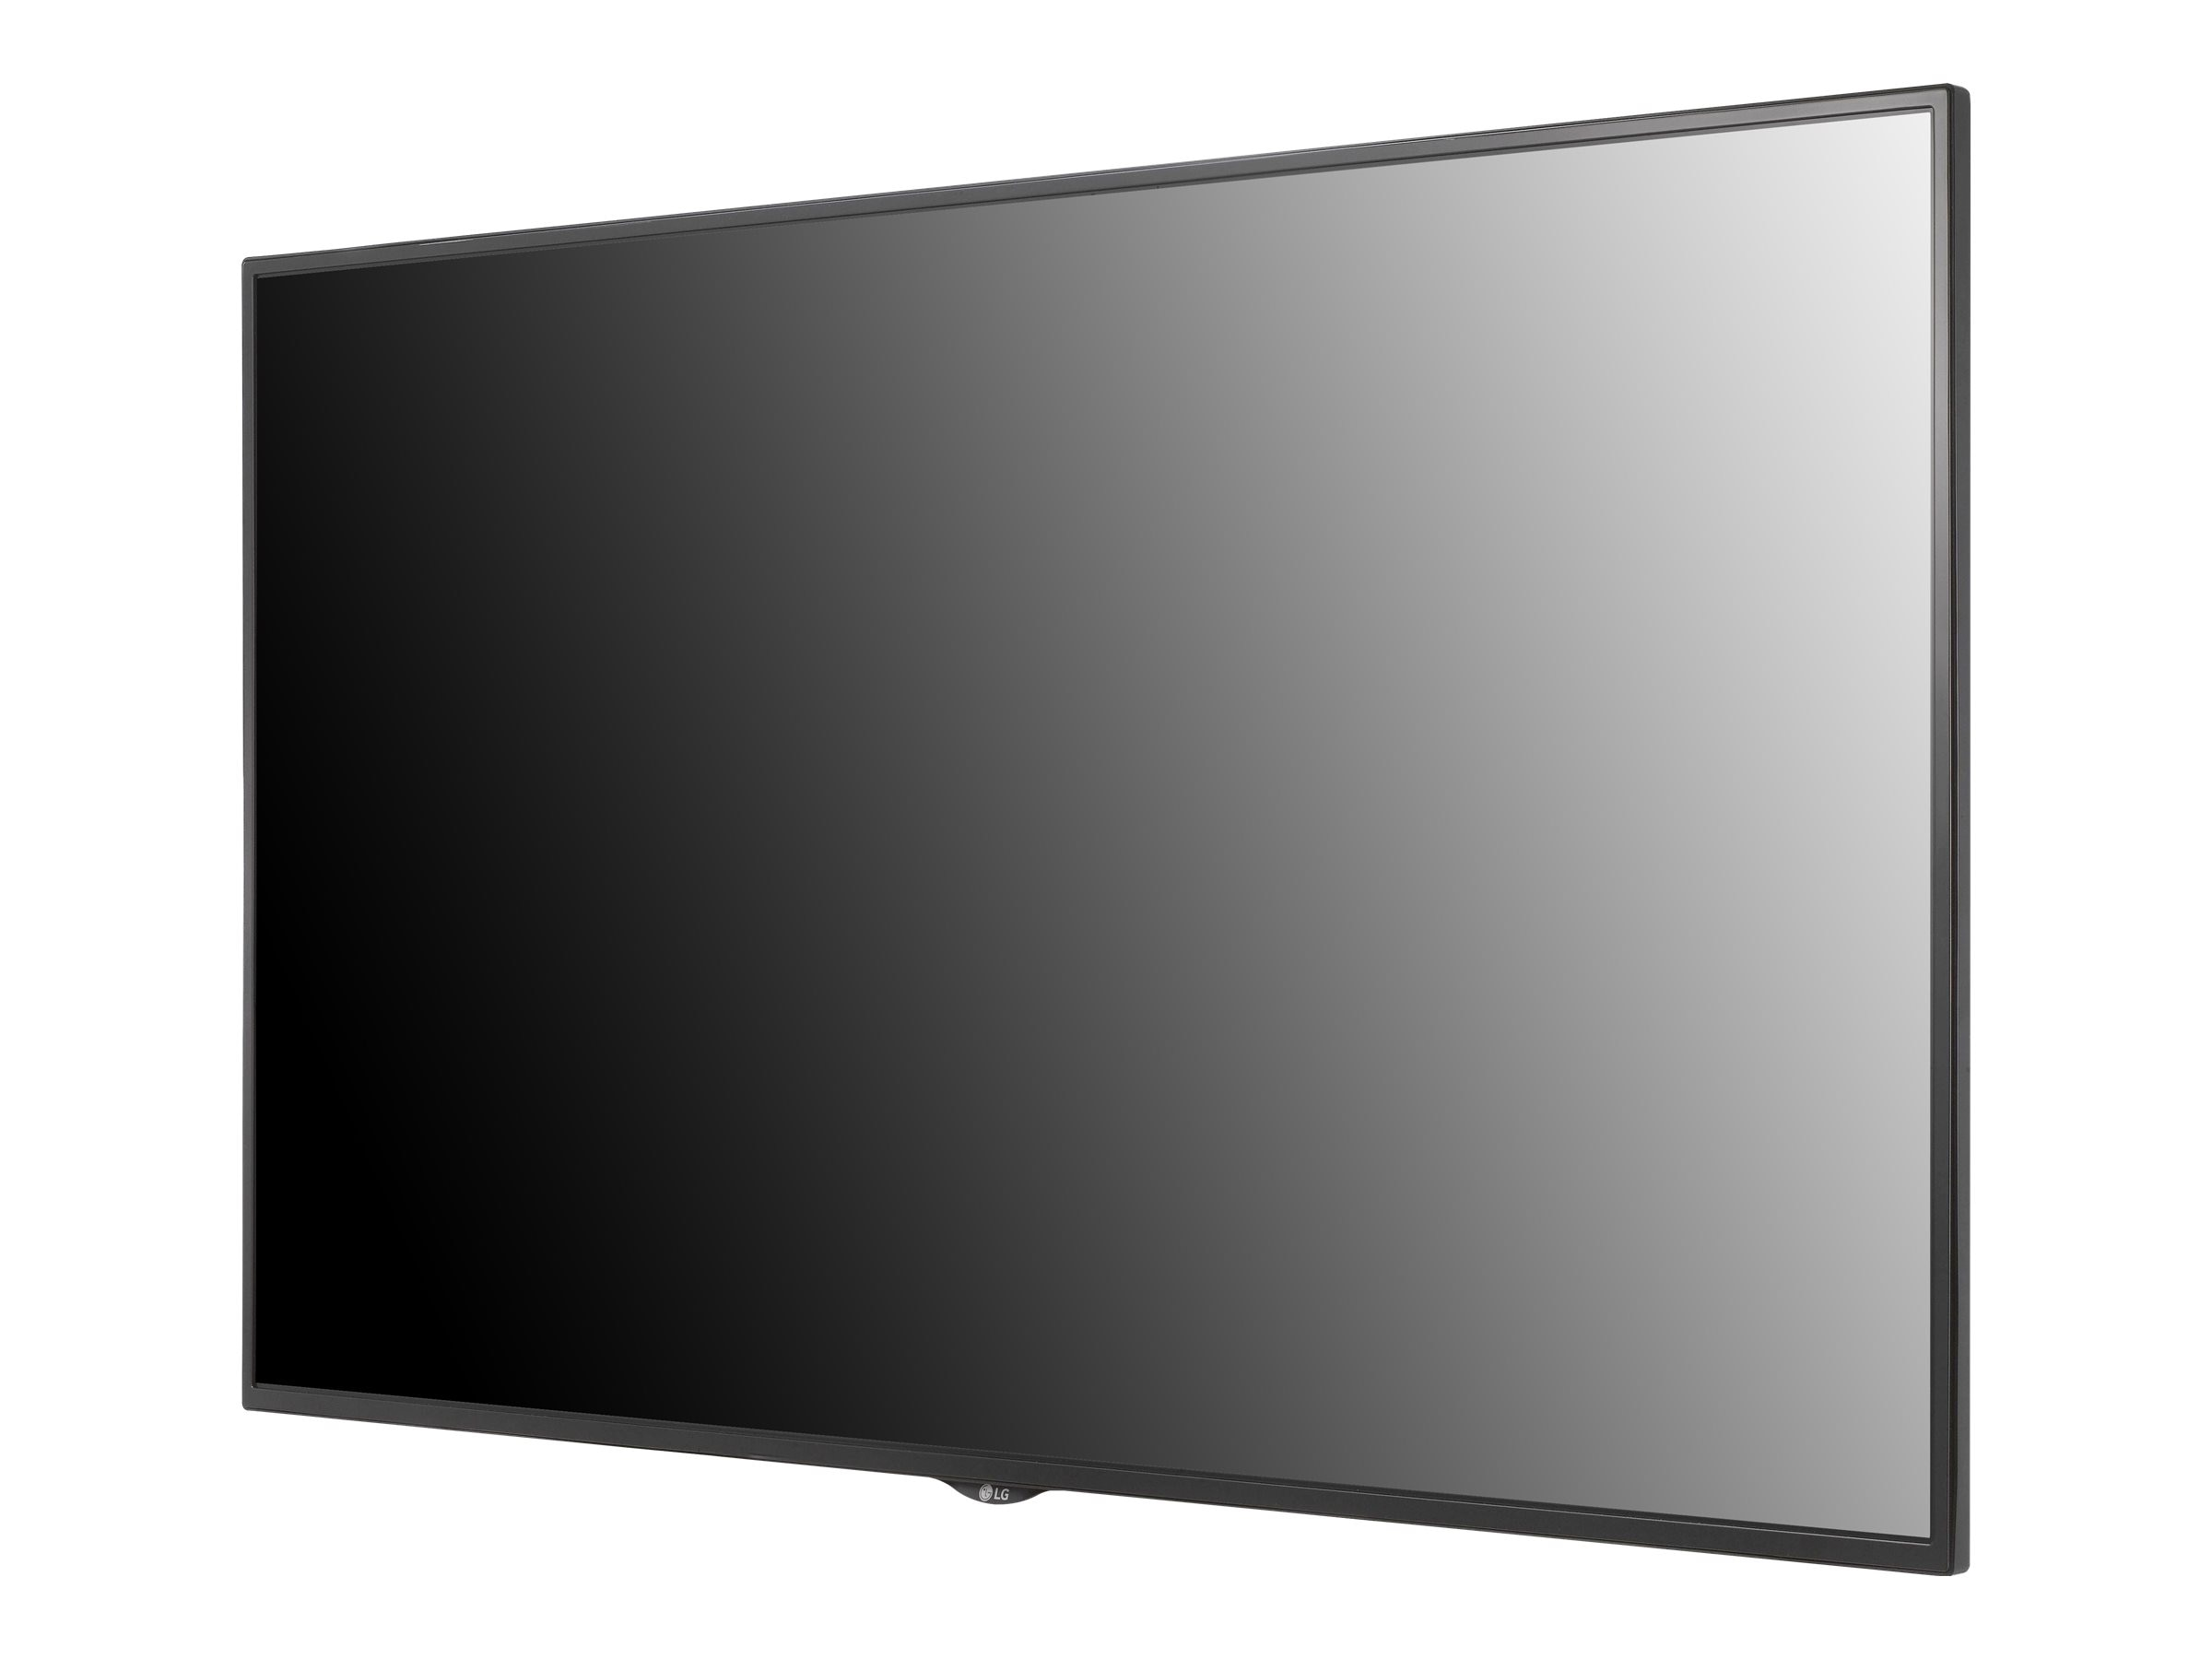 LG 55 UH5B-B Ultra HD LED-LCD Display, Black, 55UH5B-B, 27870364, Monitors - Large-Format LED-LCD